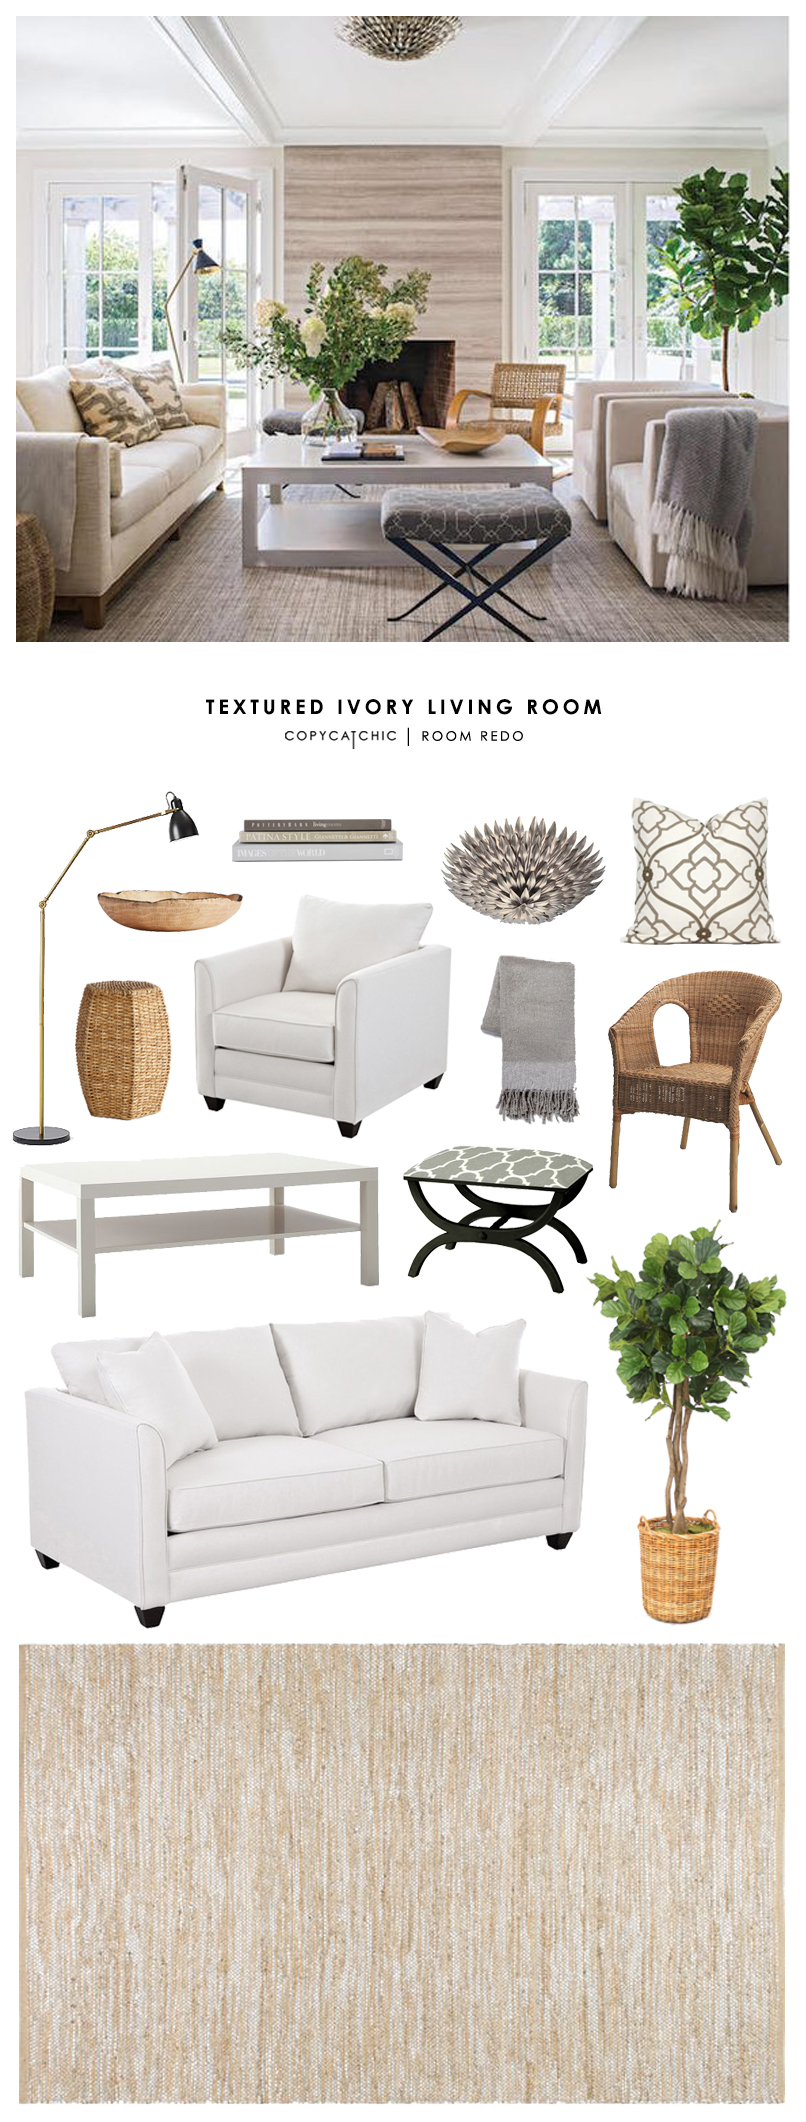 Copy Cat Chic Room Redo Textured Ivory Living Room